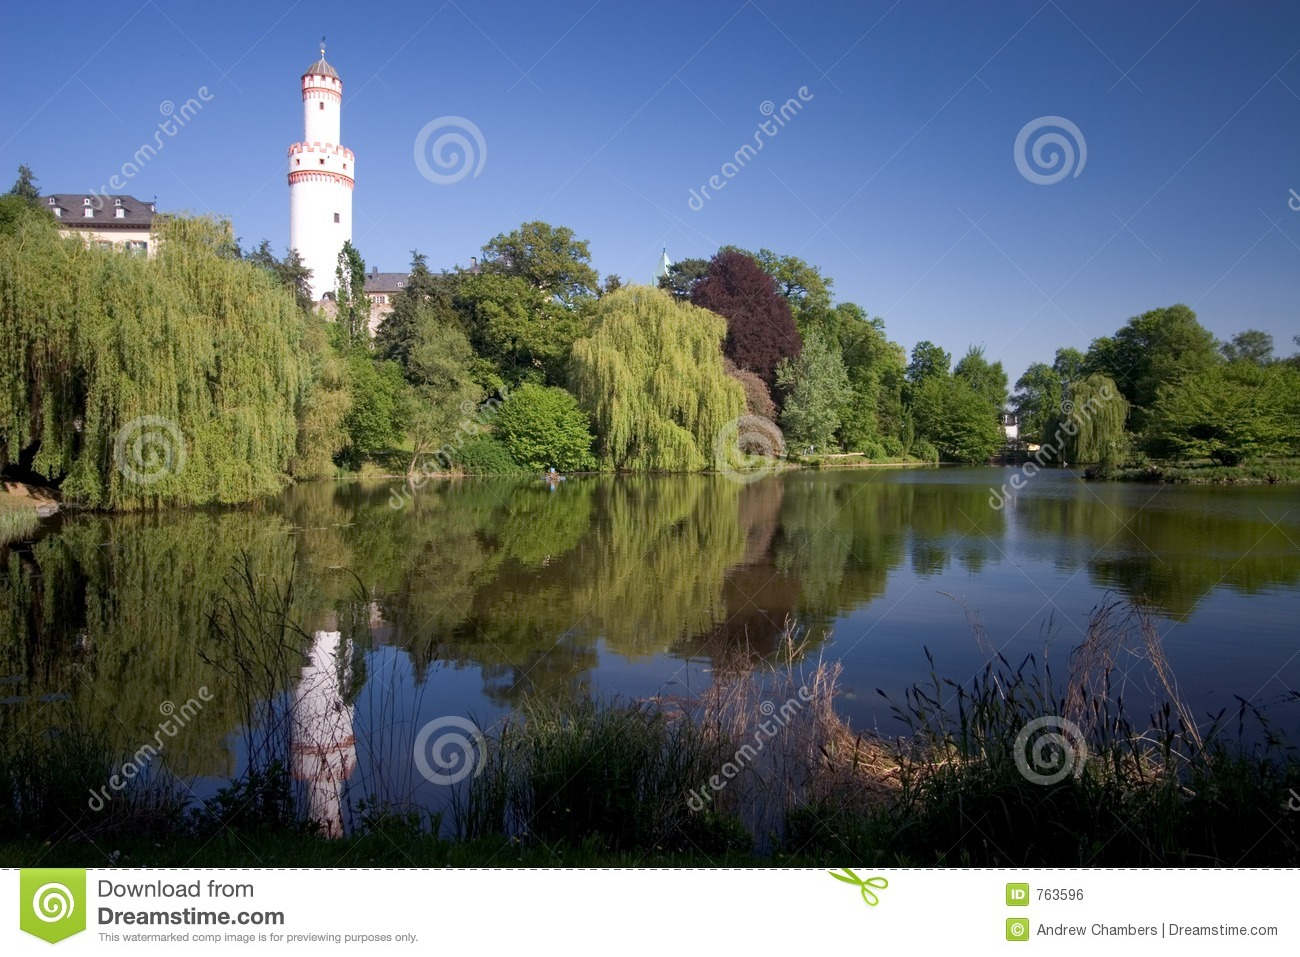 Bad Homburg Schloss Royalty Free Stock Image.